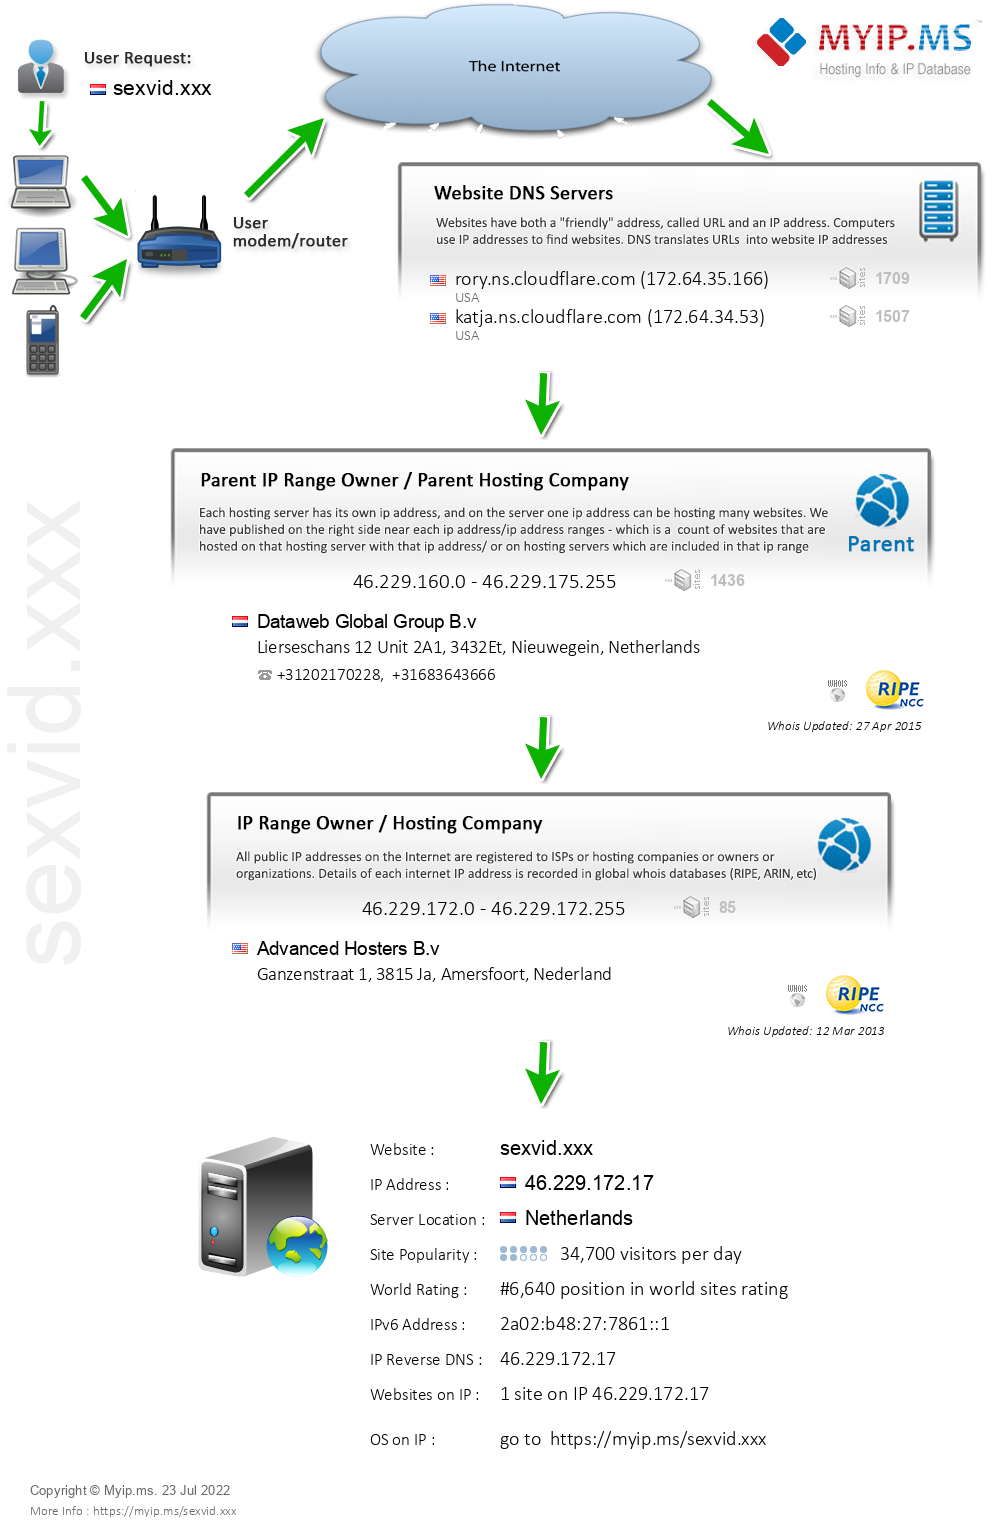 Sexvid.xxx - Website Hosting Visual IP Diagram